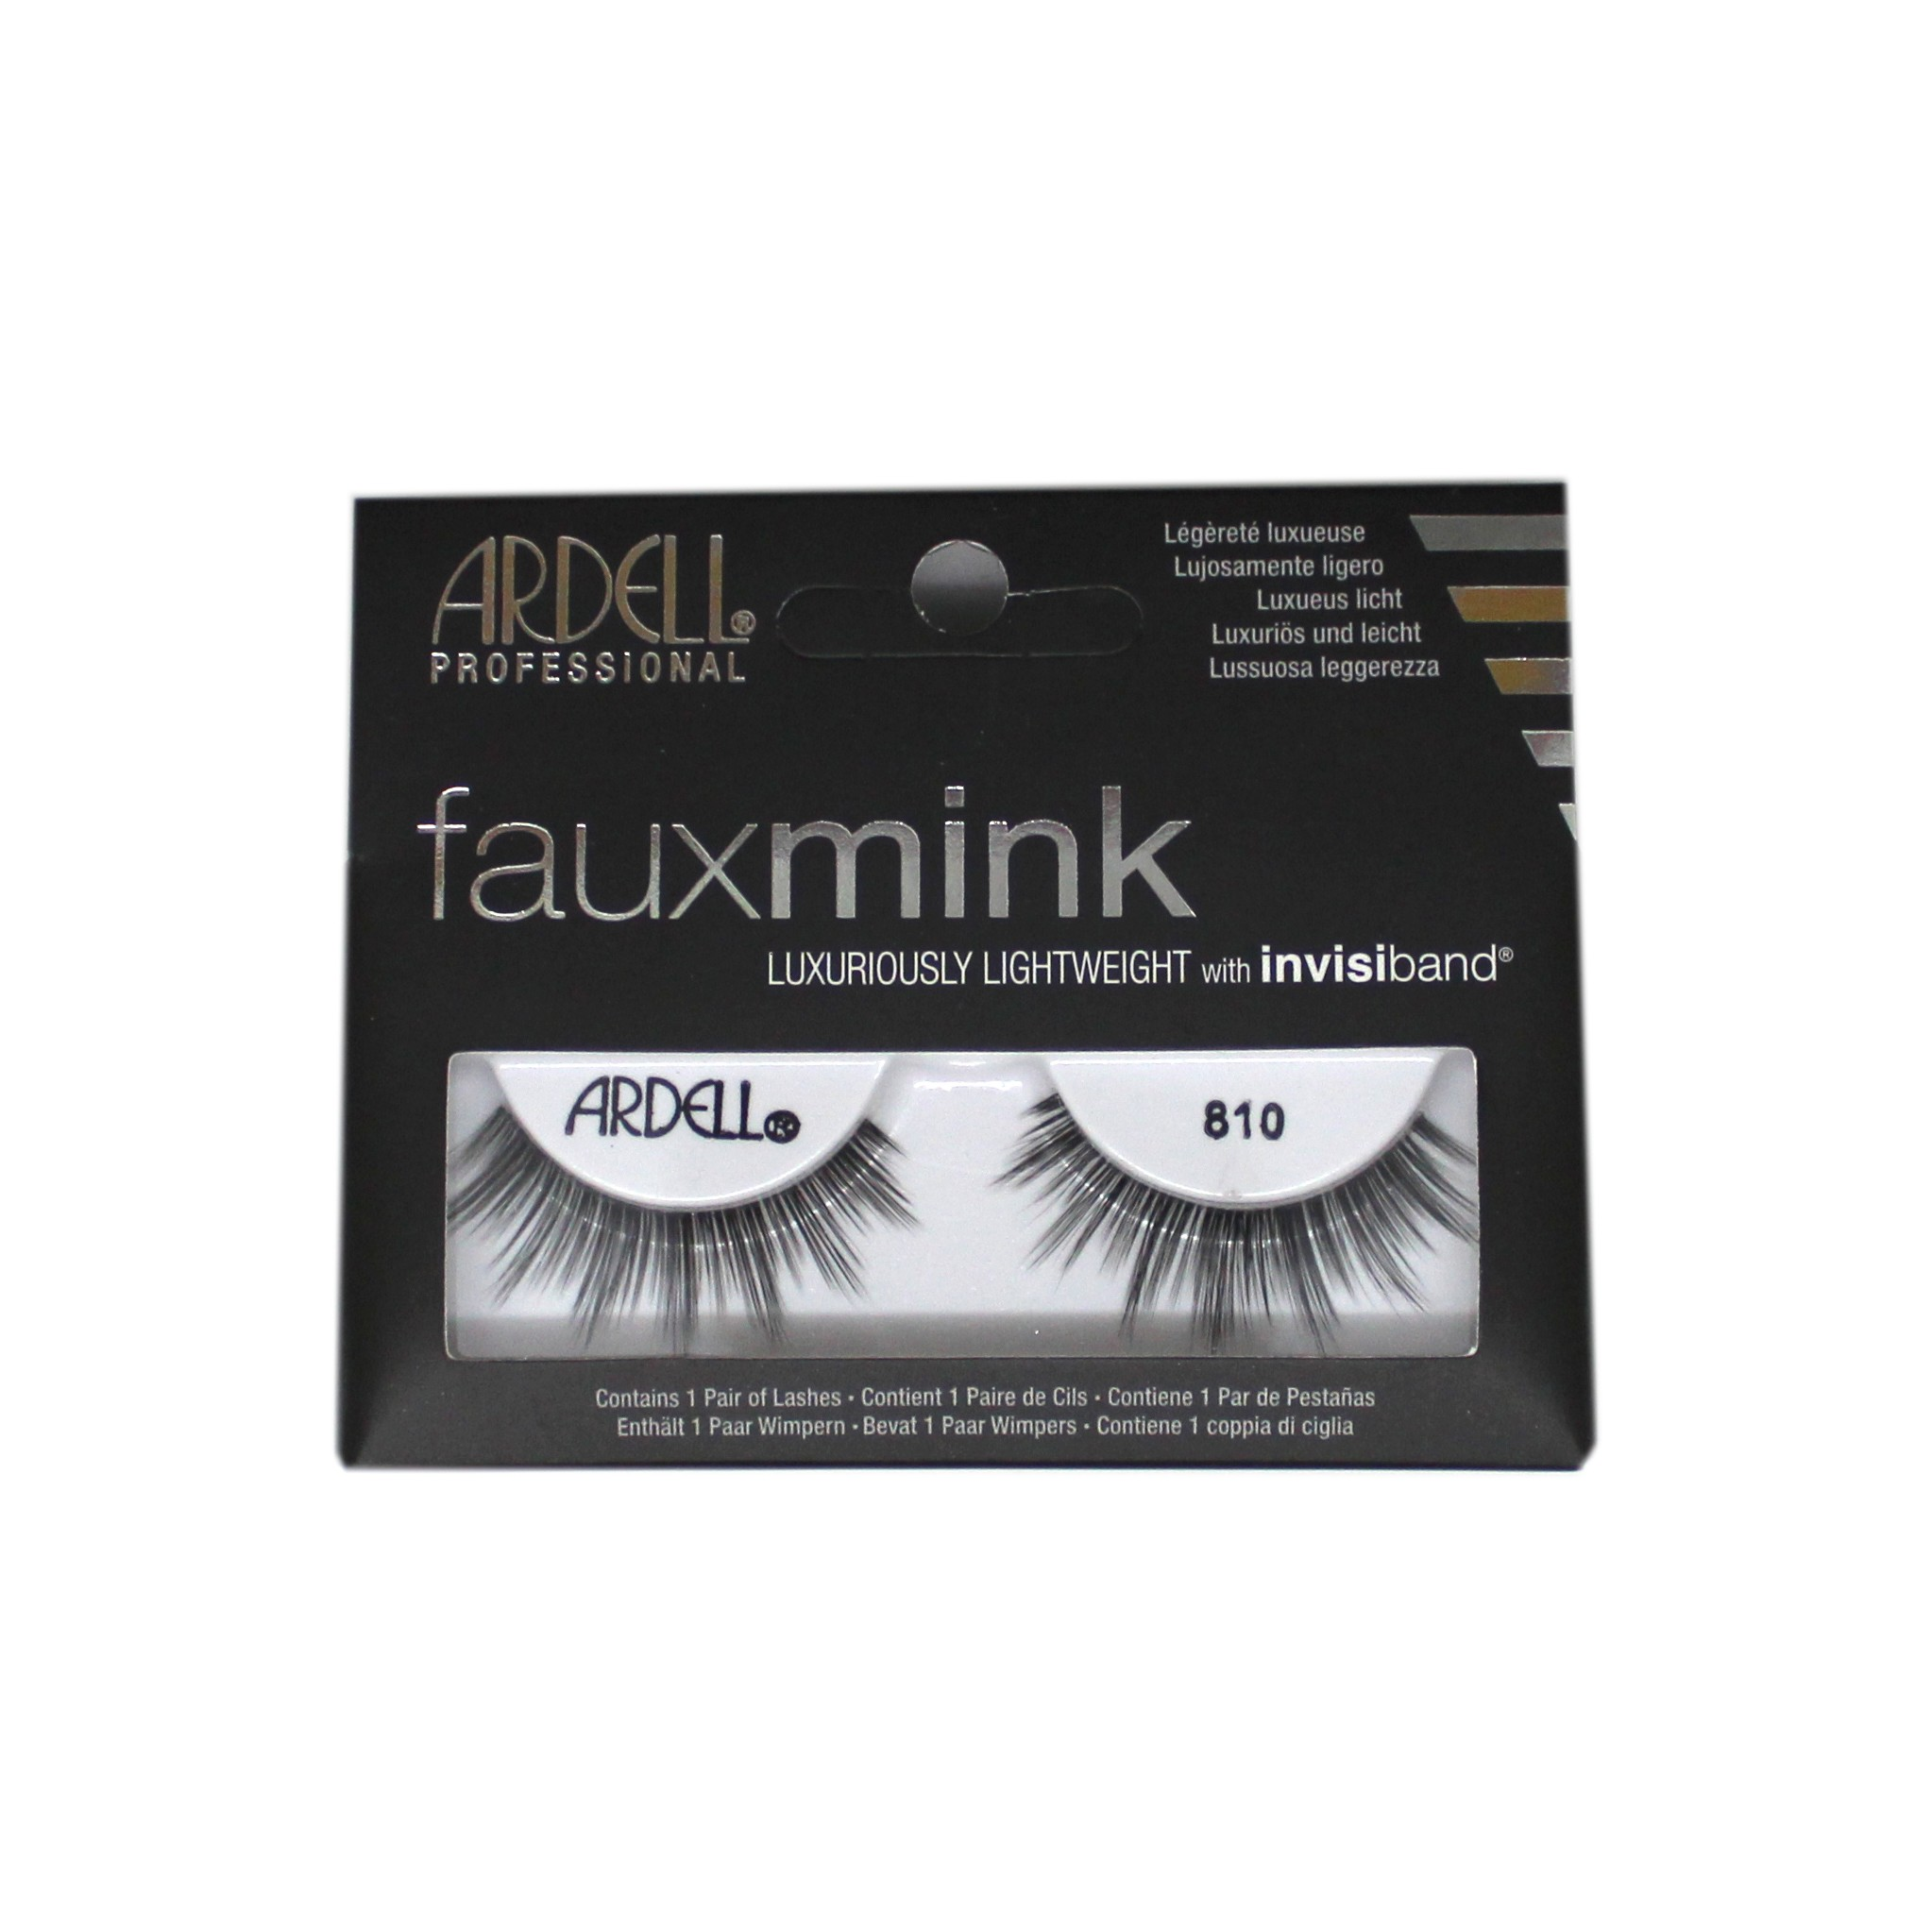 6dcd19411d3 Ardell Fauxmink #810 - Natali Products Inc